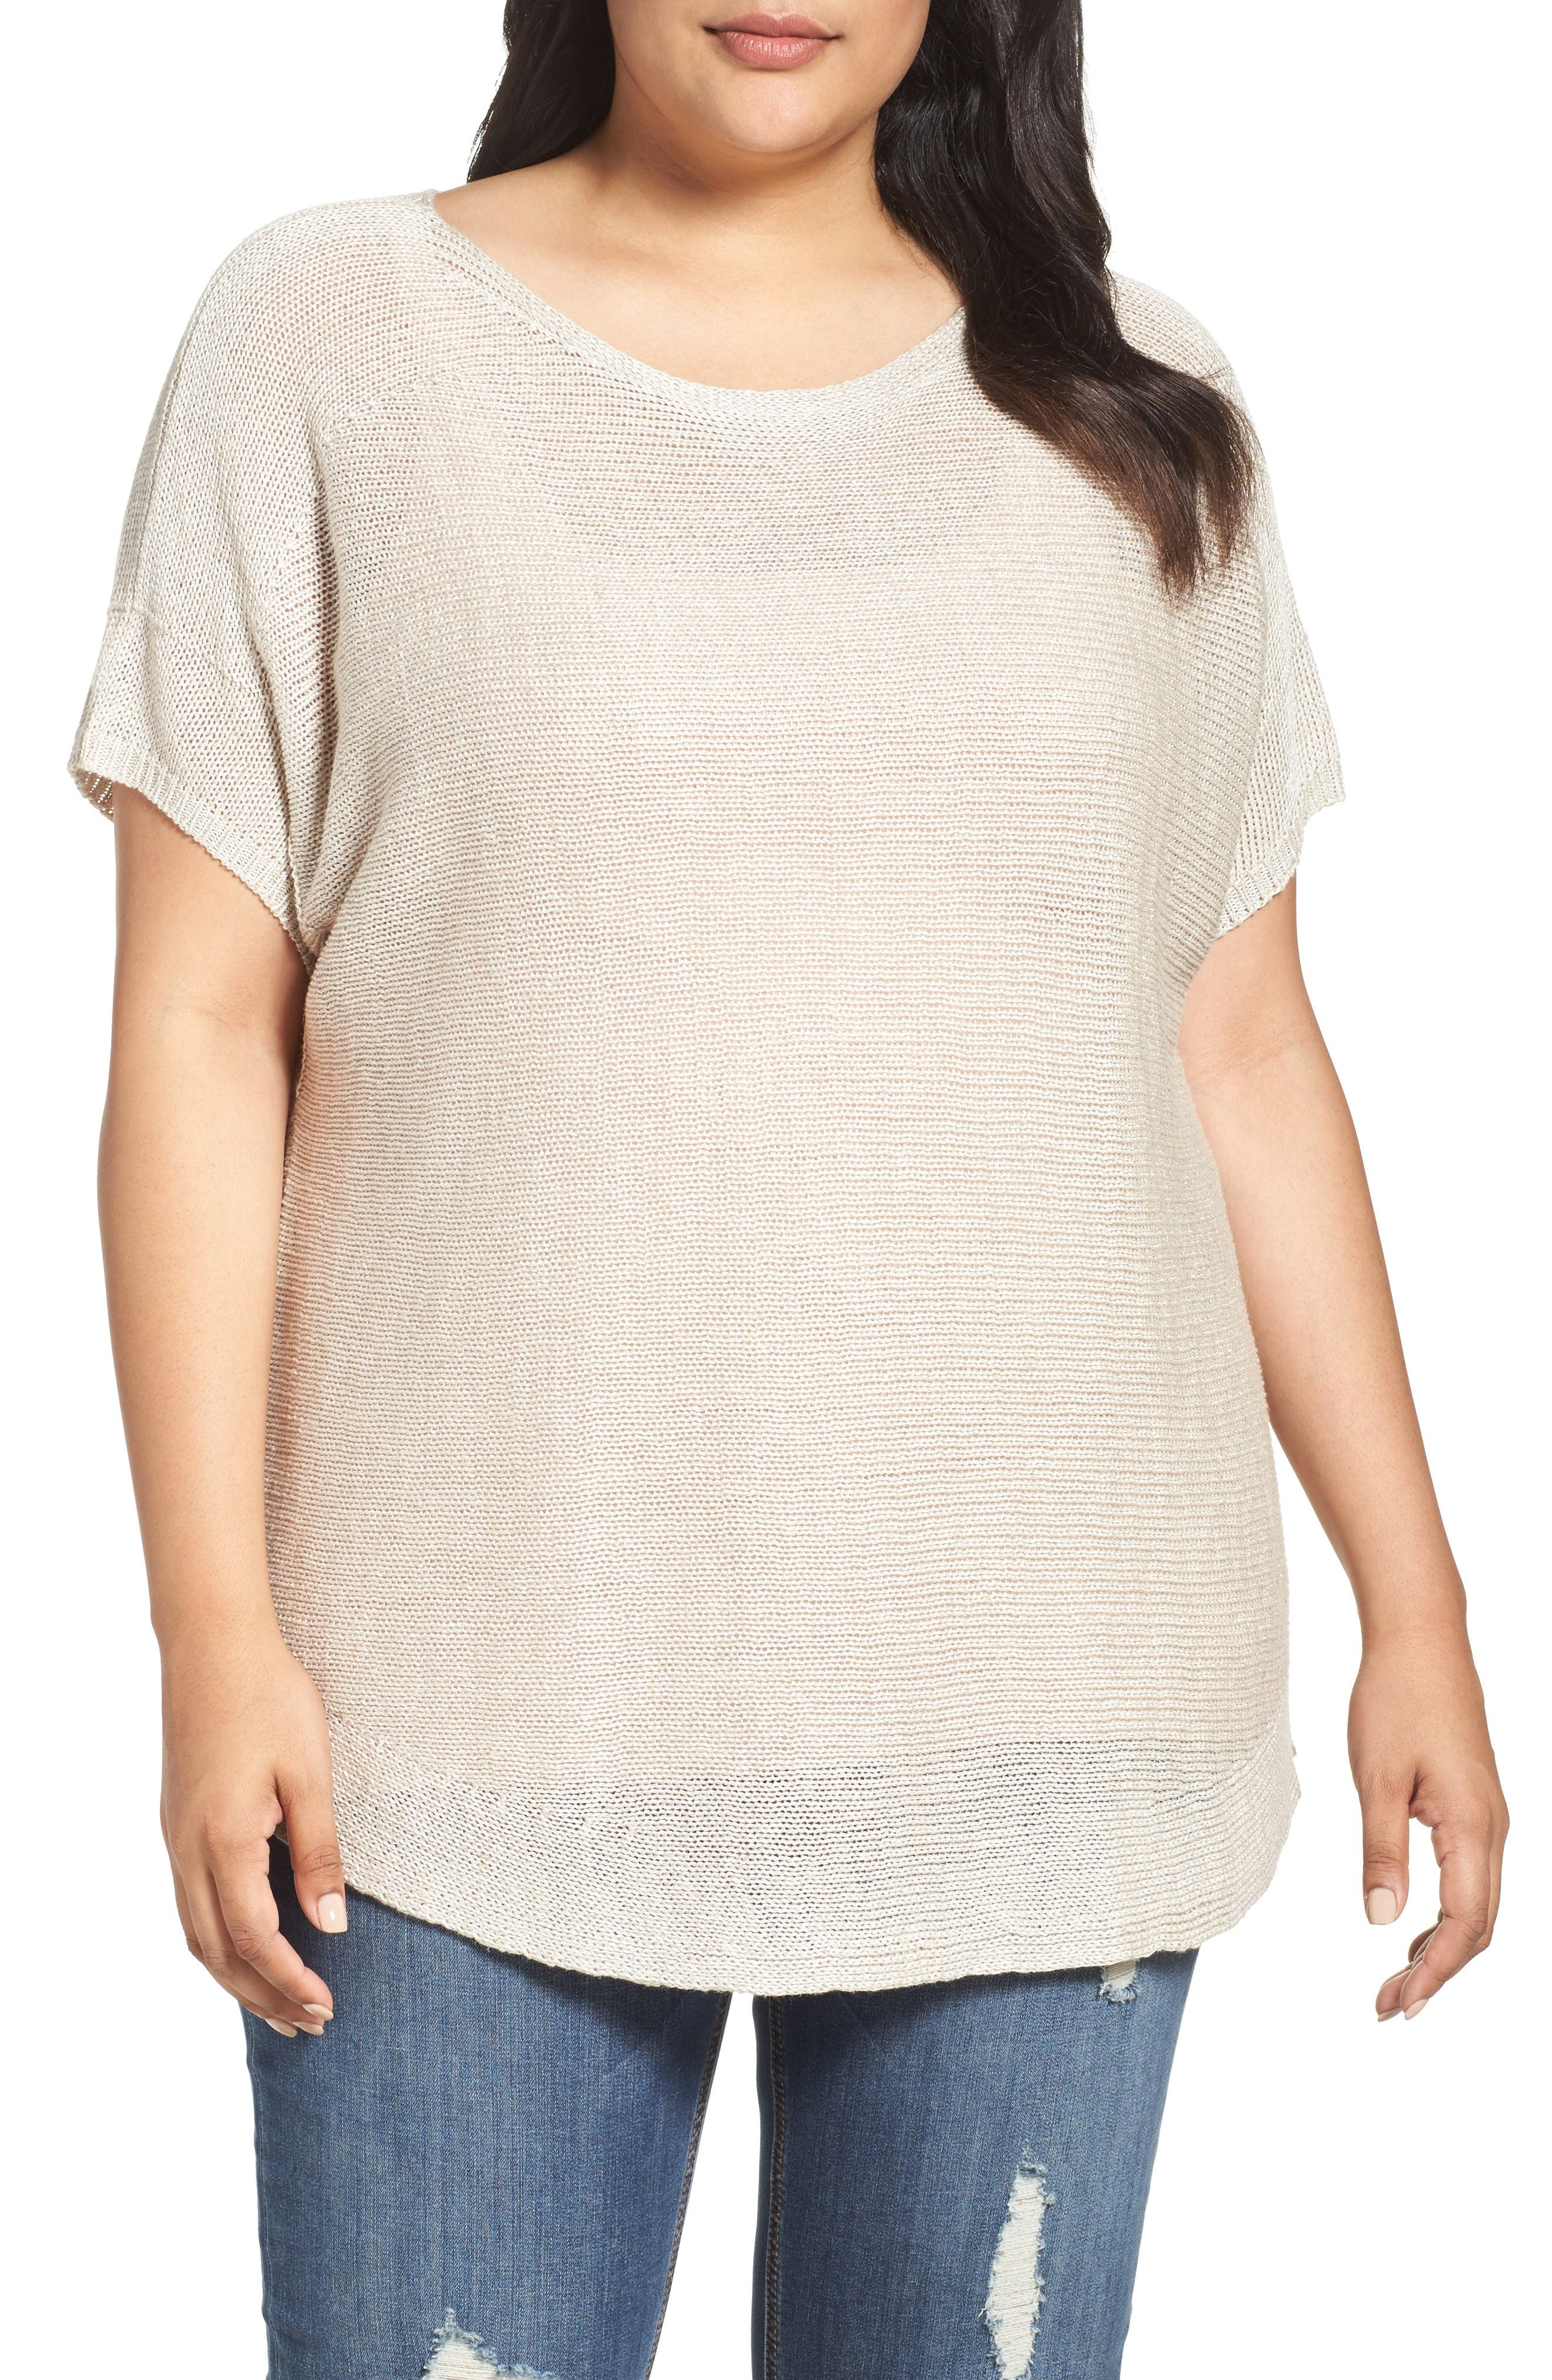 Alternate Image 1 Selected - Tart Padma Linen Blend Sweater (Plus Size)